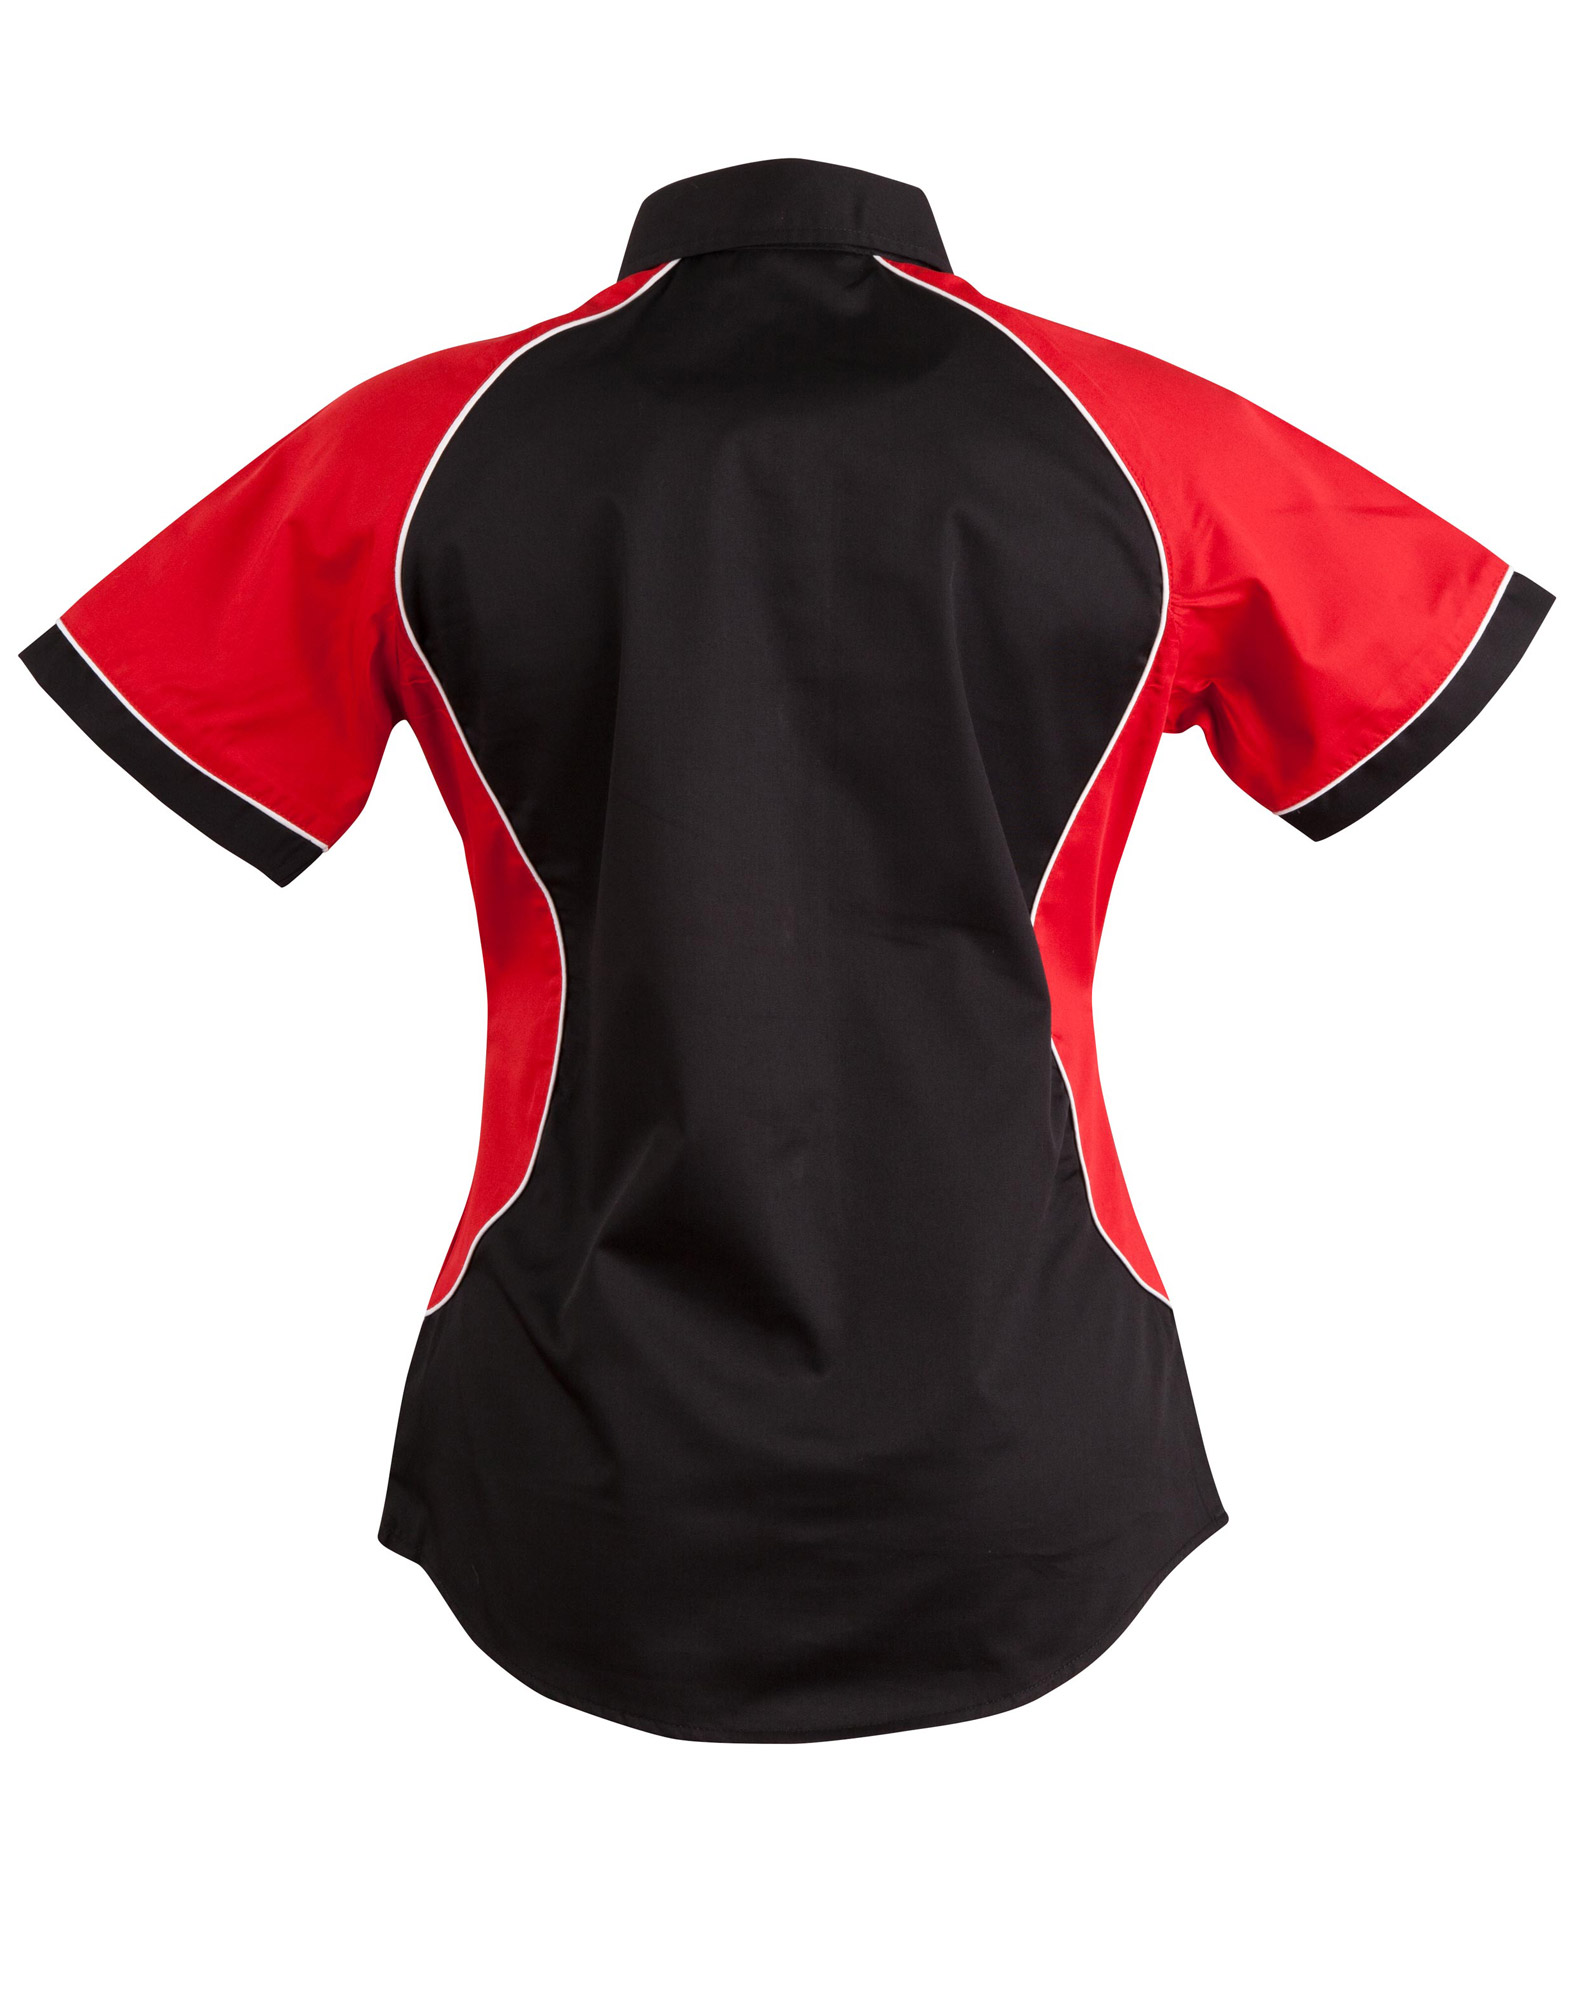 http://ws-imgs.s3.amazonaws.com/BUSINESSSHIRTS/BS16_Black.White.Red_Back_l.jpg